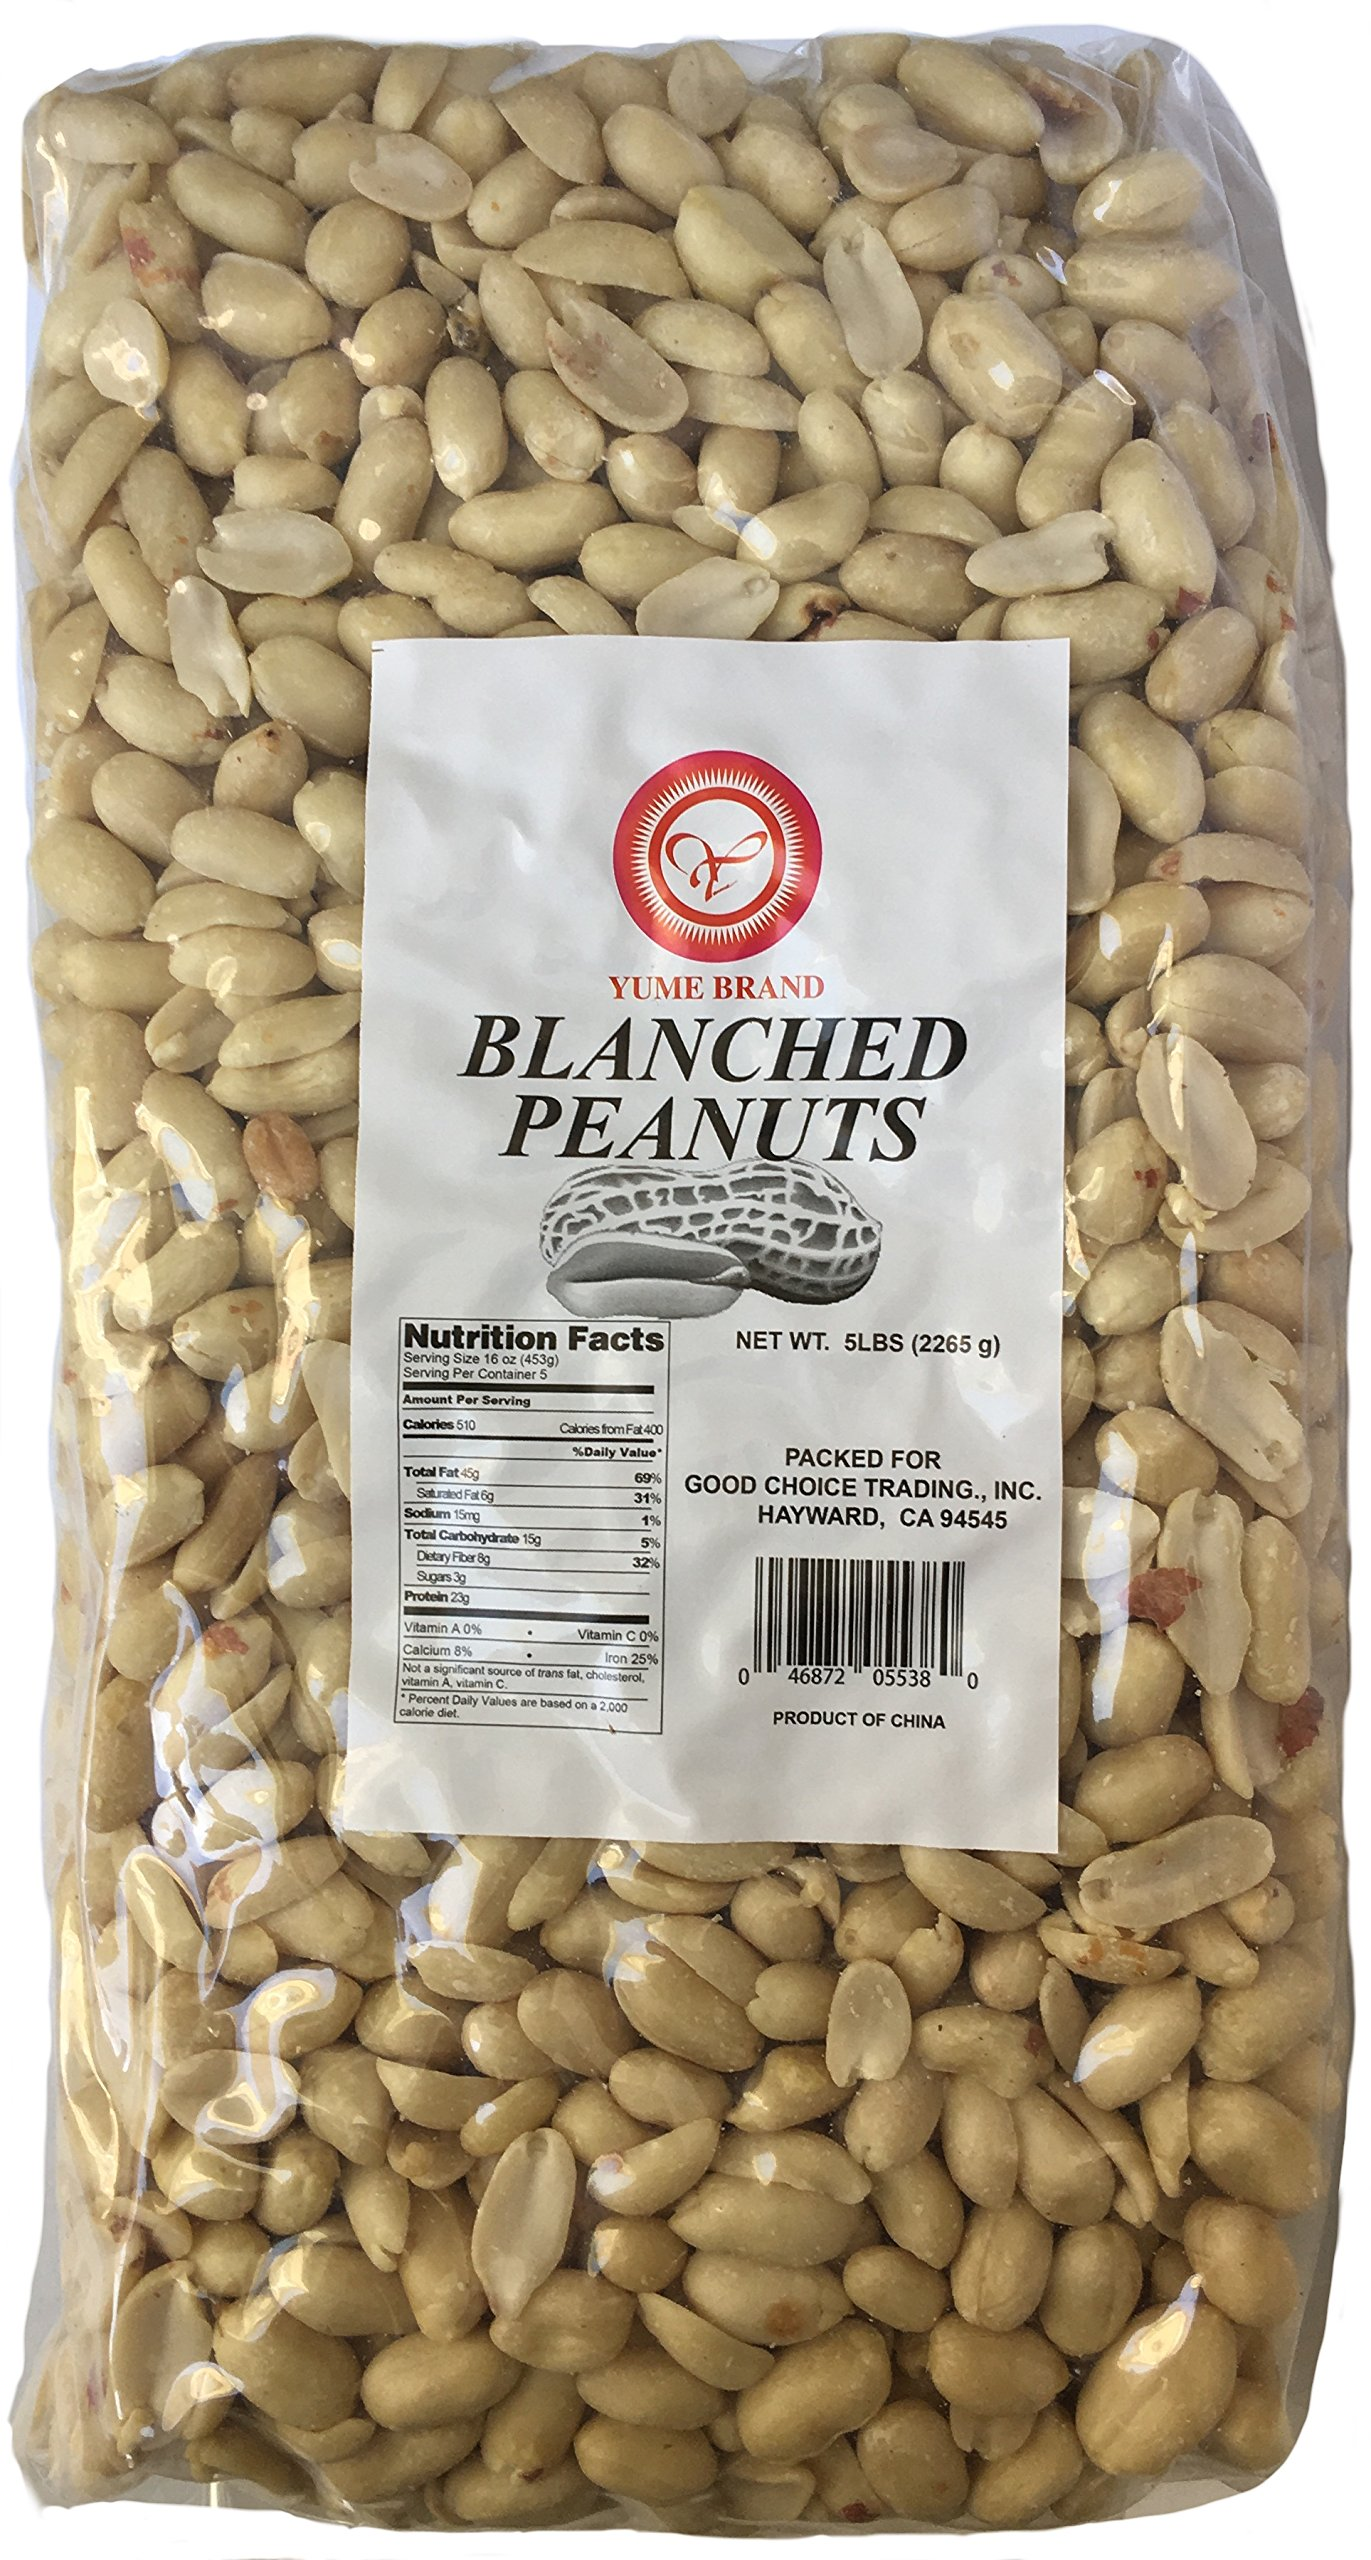 Yume 10 lb. Unsalted peanuts, raw, vacuum packed freshness, great for peanut butter, brittle, snacks! Skinned and shelled so weight is only in peanuts not what you throw away!